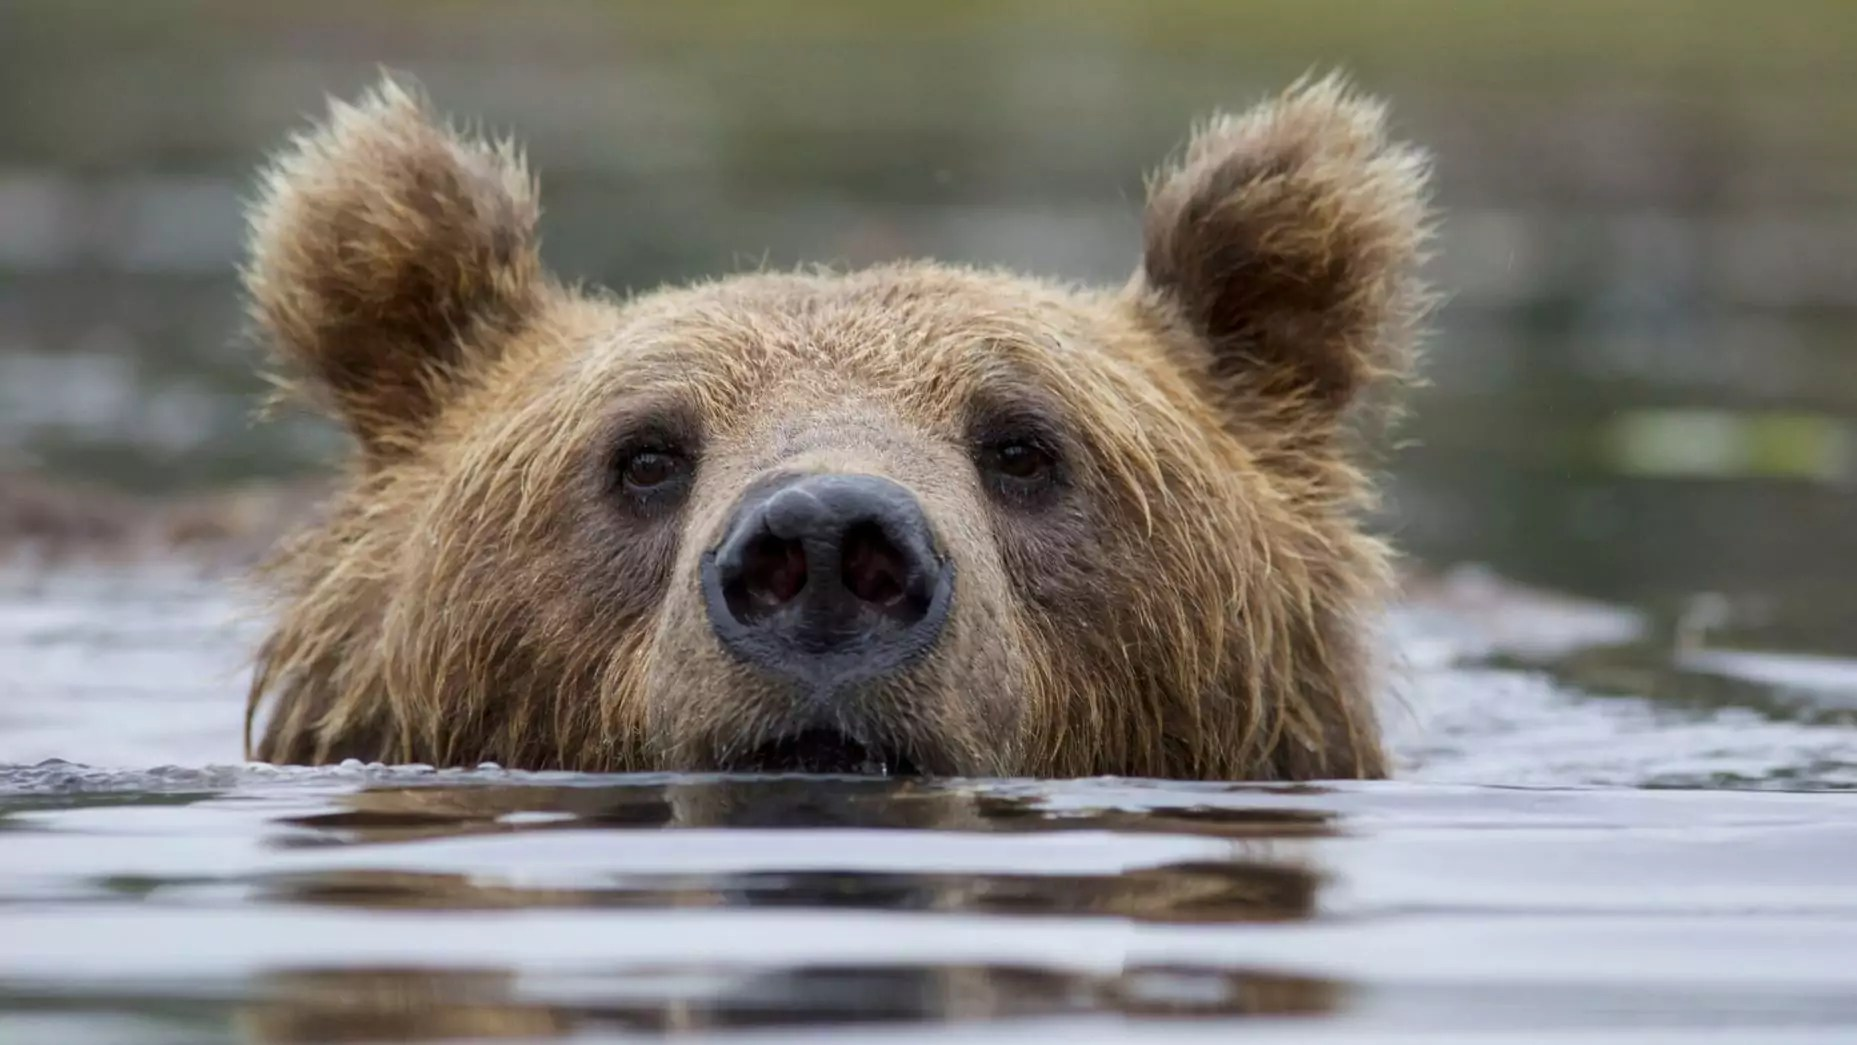 A brown bear pokes their head out from underwater.